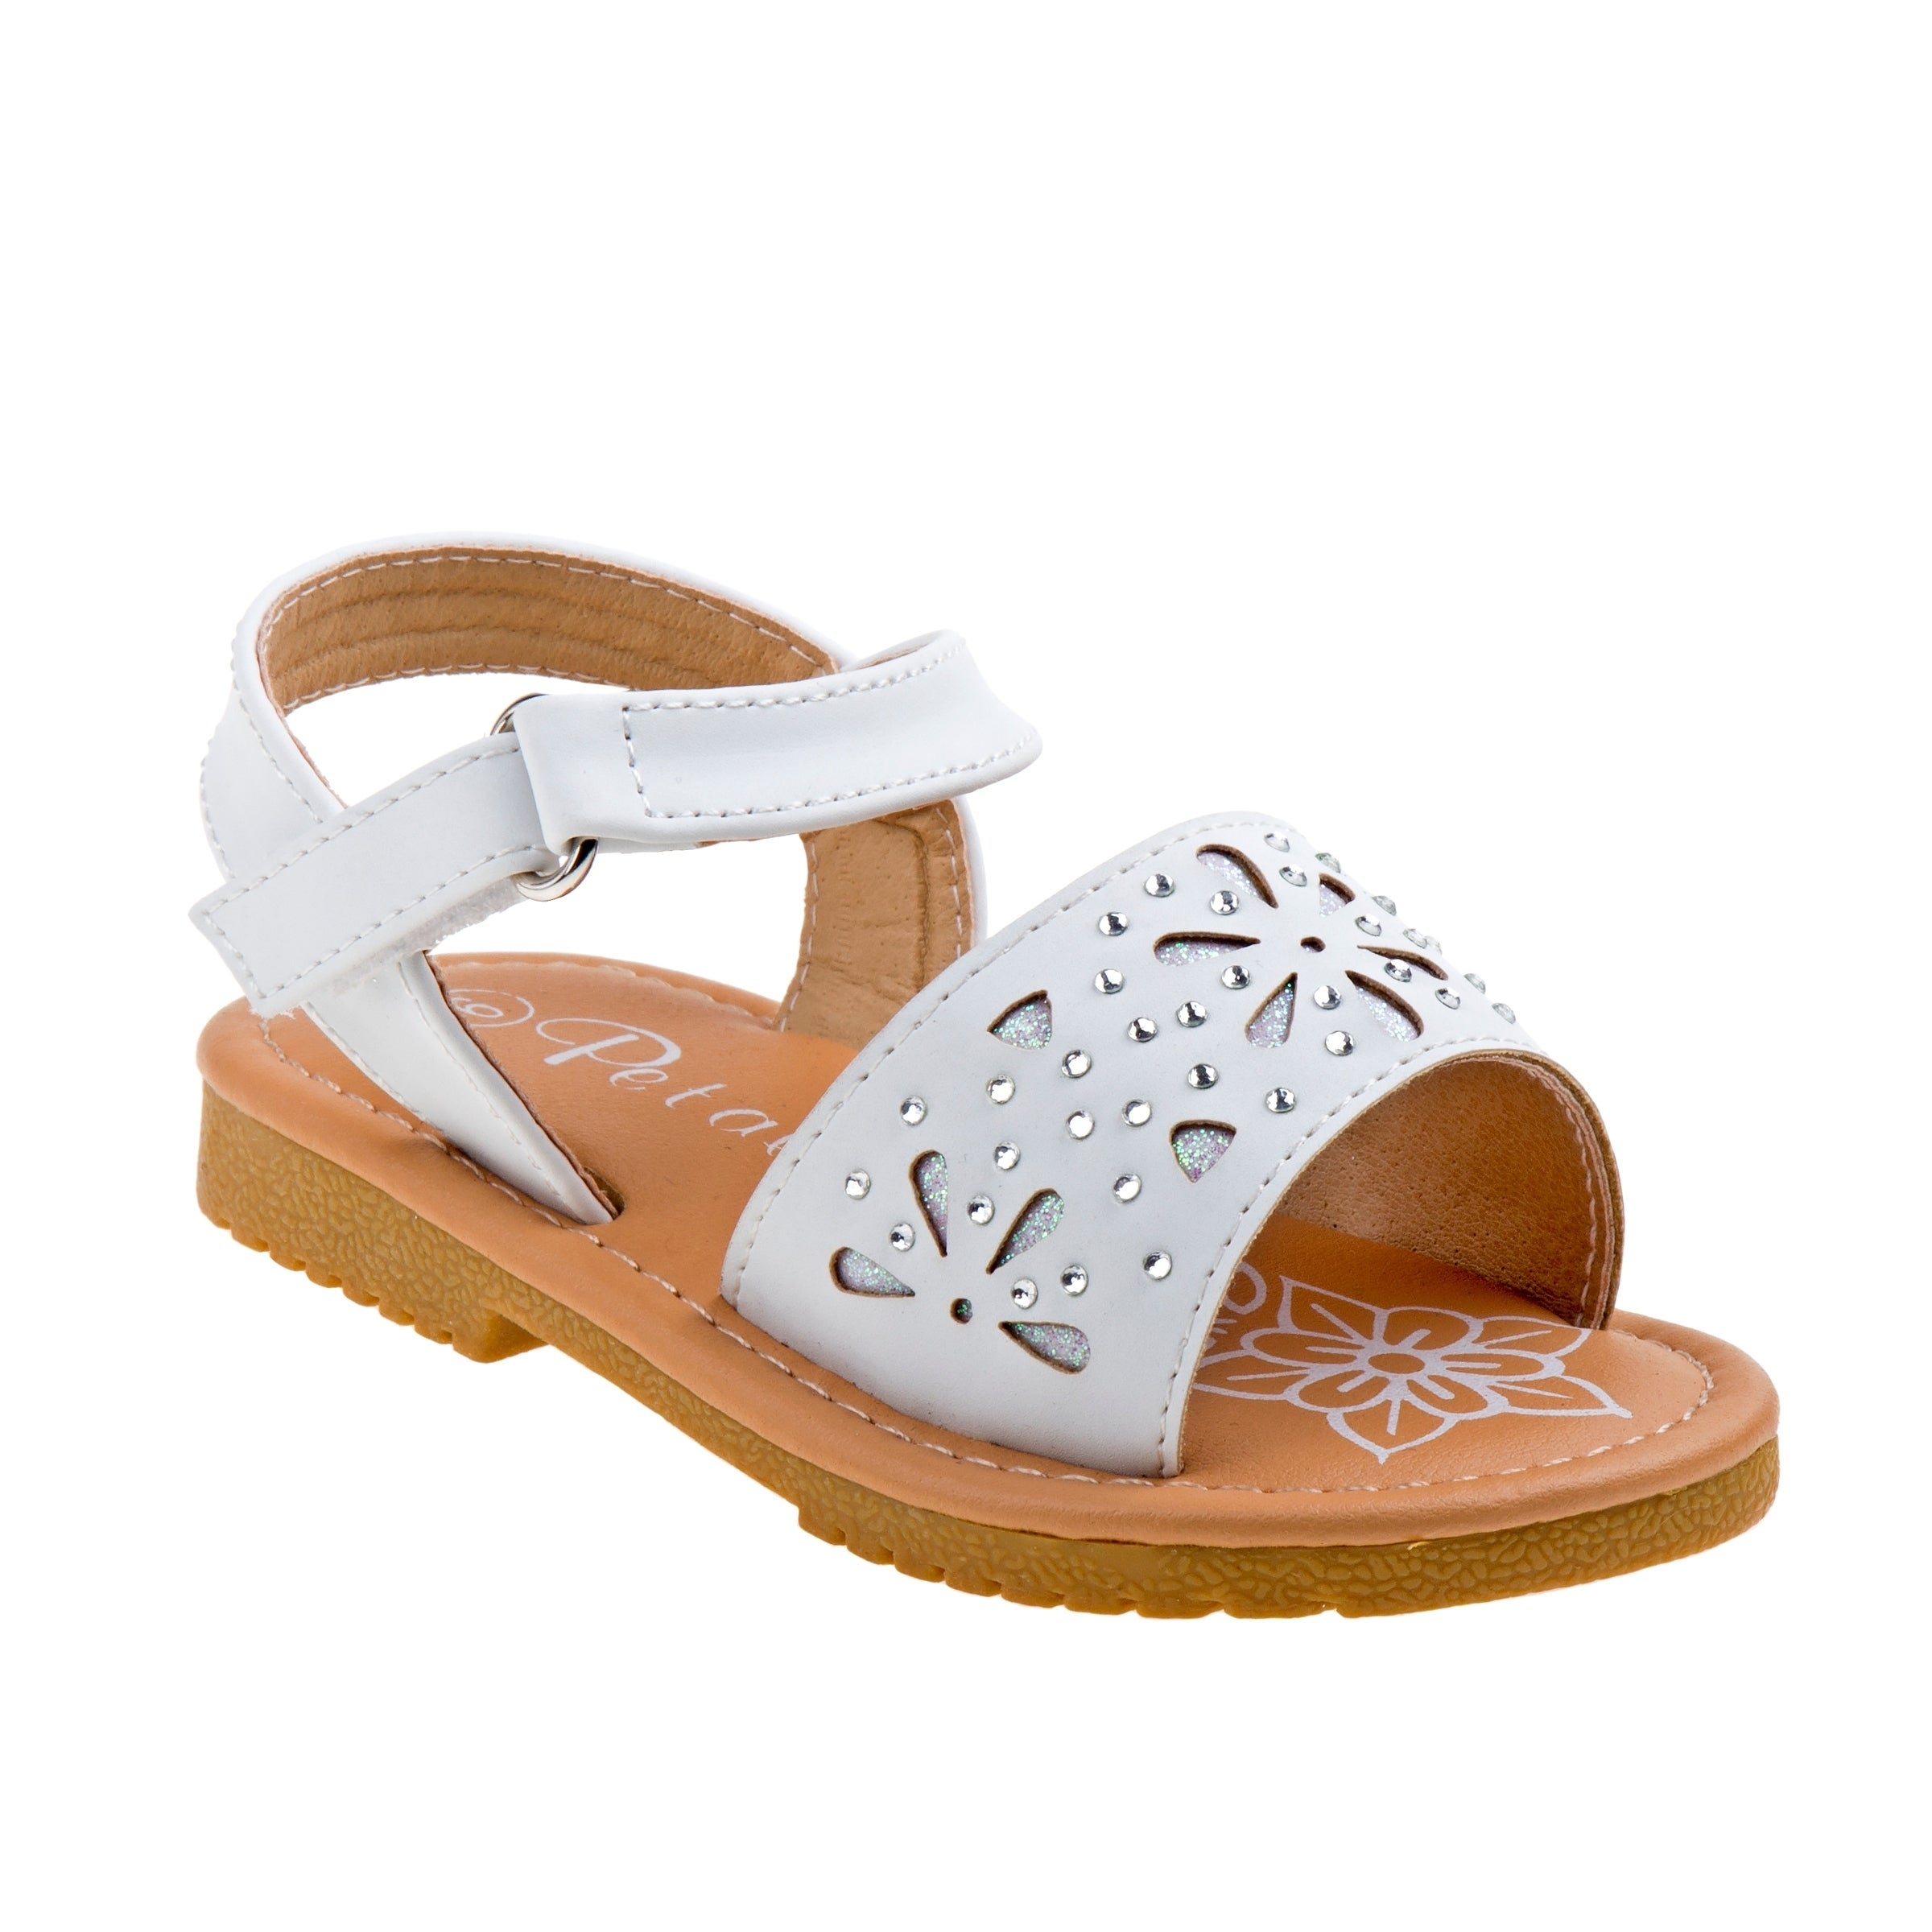 76fa2c446405 Shop Petalia Girl Toddler Sandals - Free Shipping On Orders Over  45 -  Overstock - 21219463